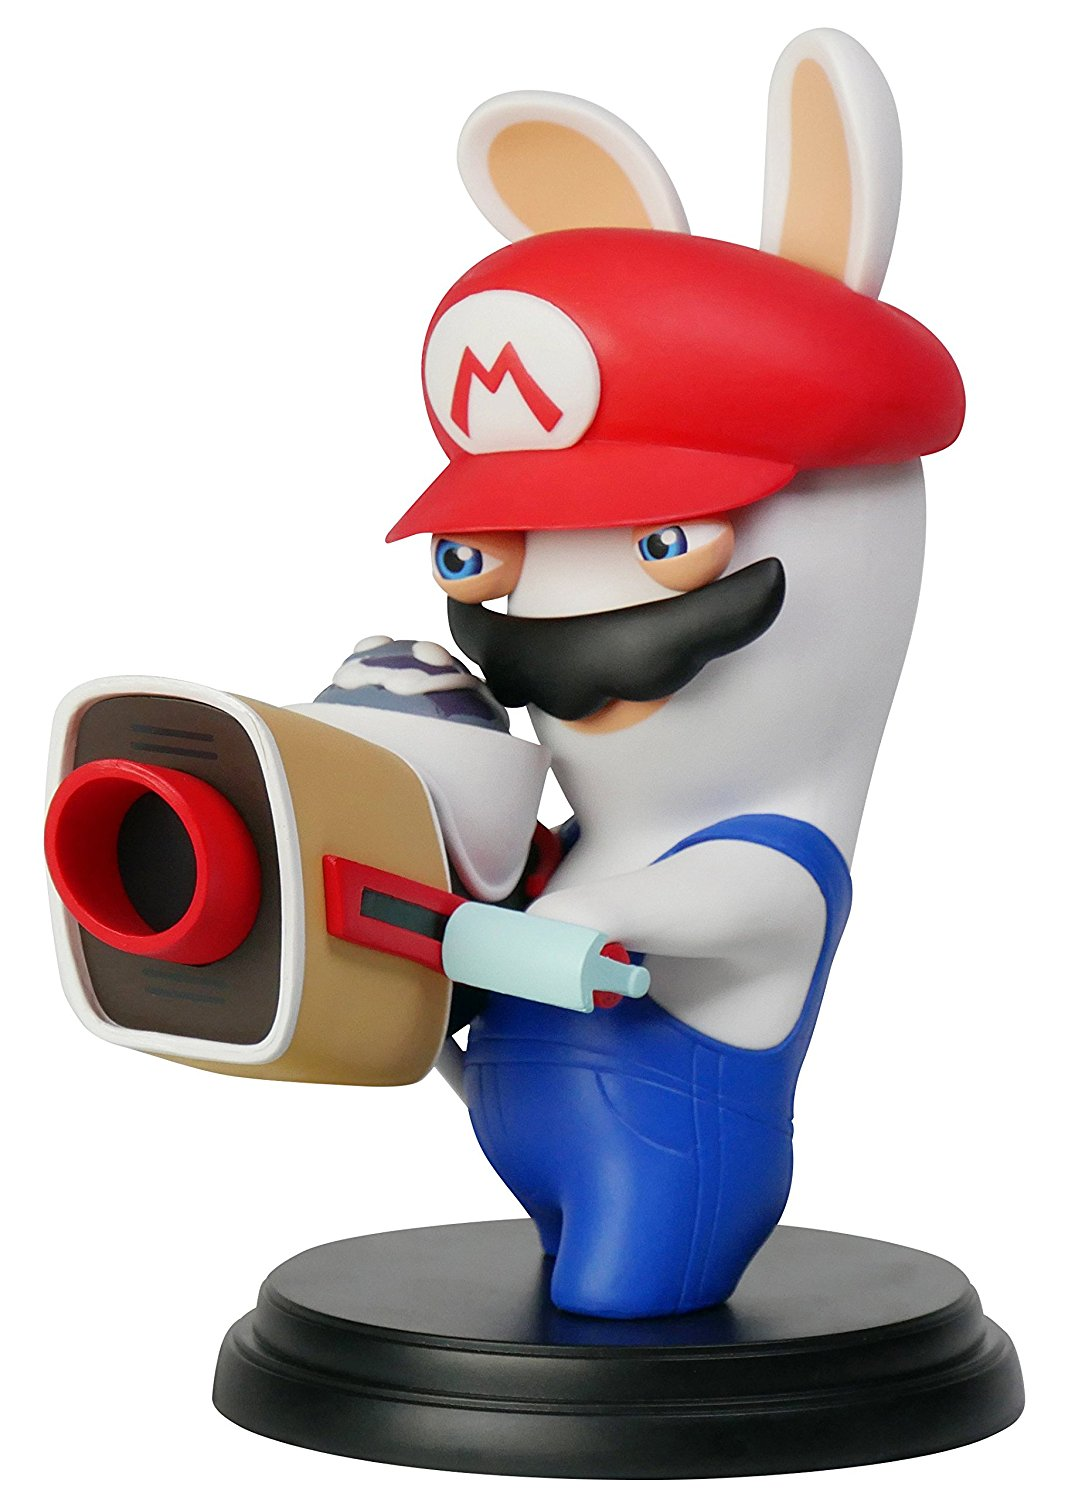 Create amazon ca account - Related Products Purchase Mario Rabbids Collectable Figurines On Amazon Ca